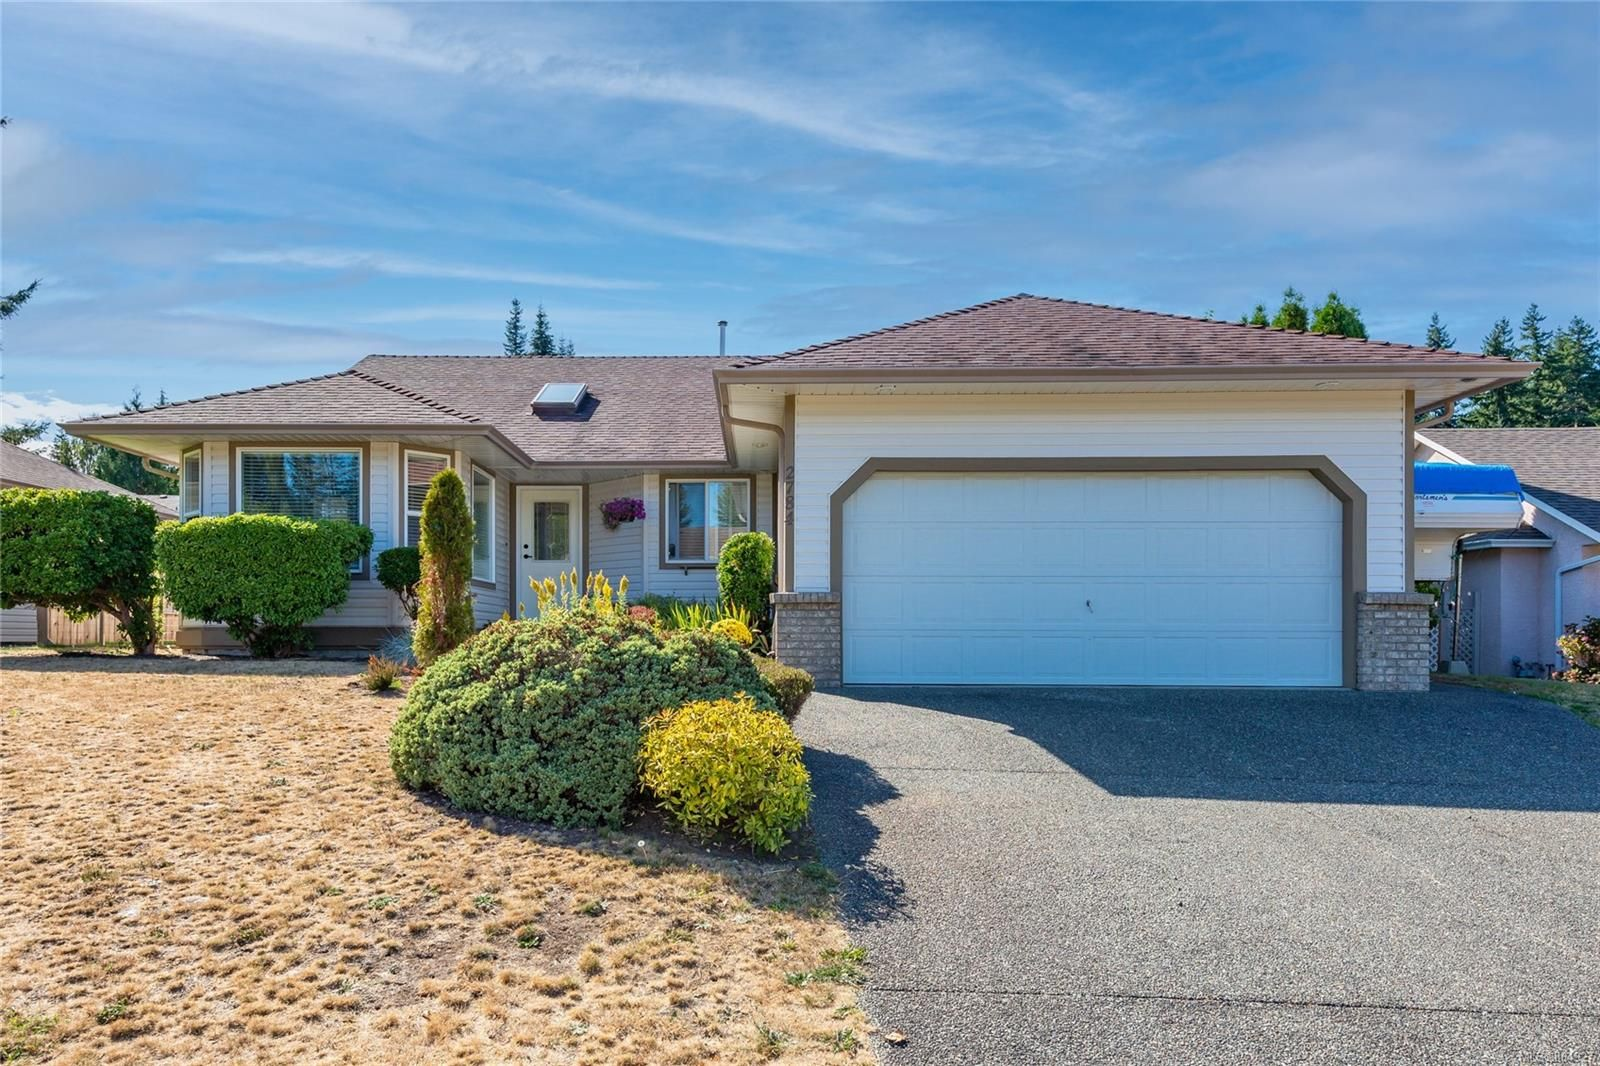 Main Photo: 2784 Bradford Dr in : CR Willow Point House for sale (Campbell River)  : MLS®# 884927